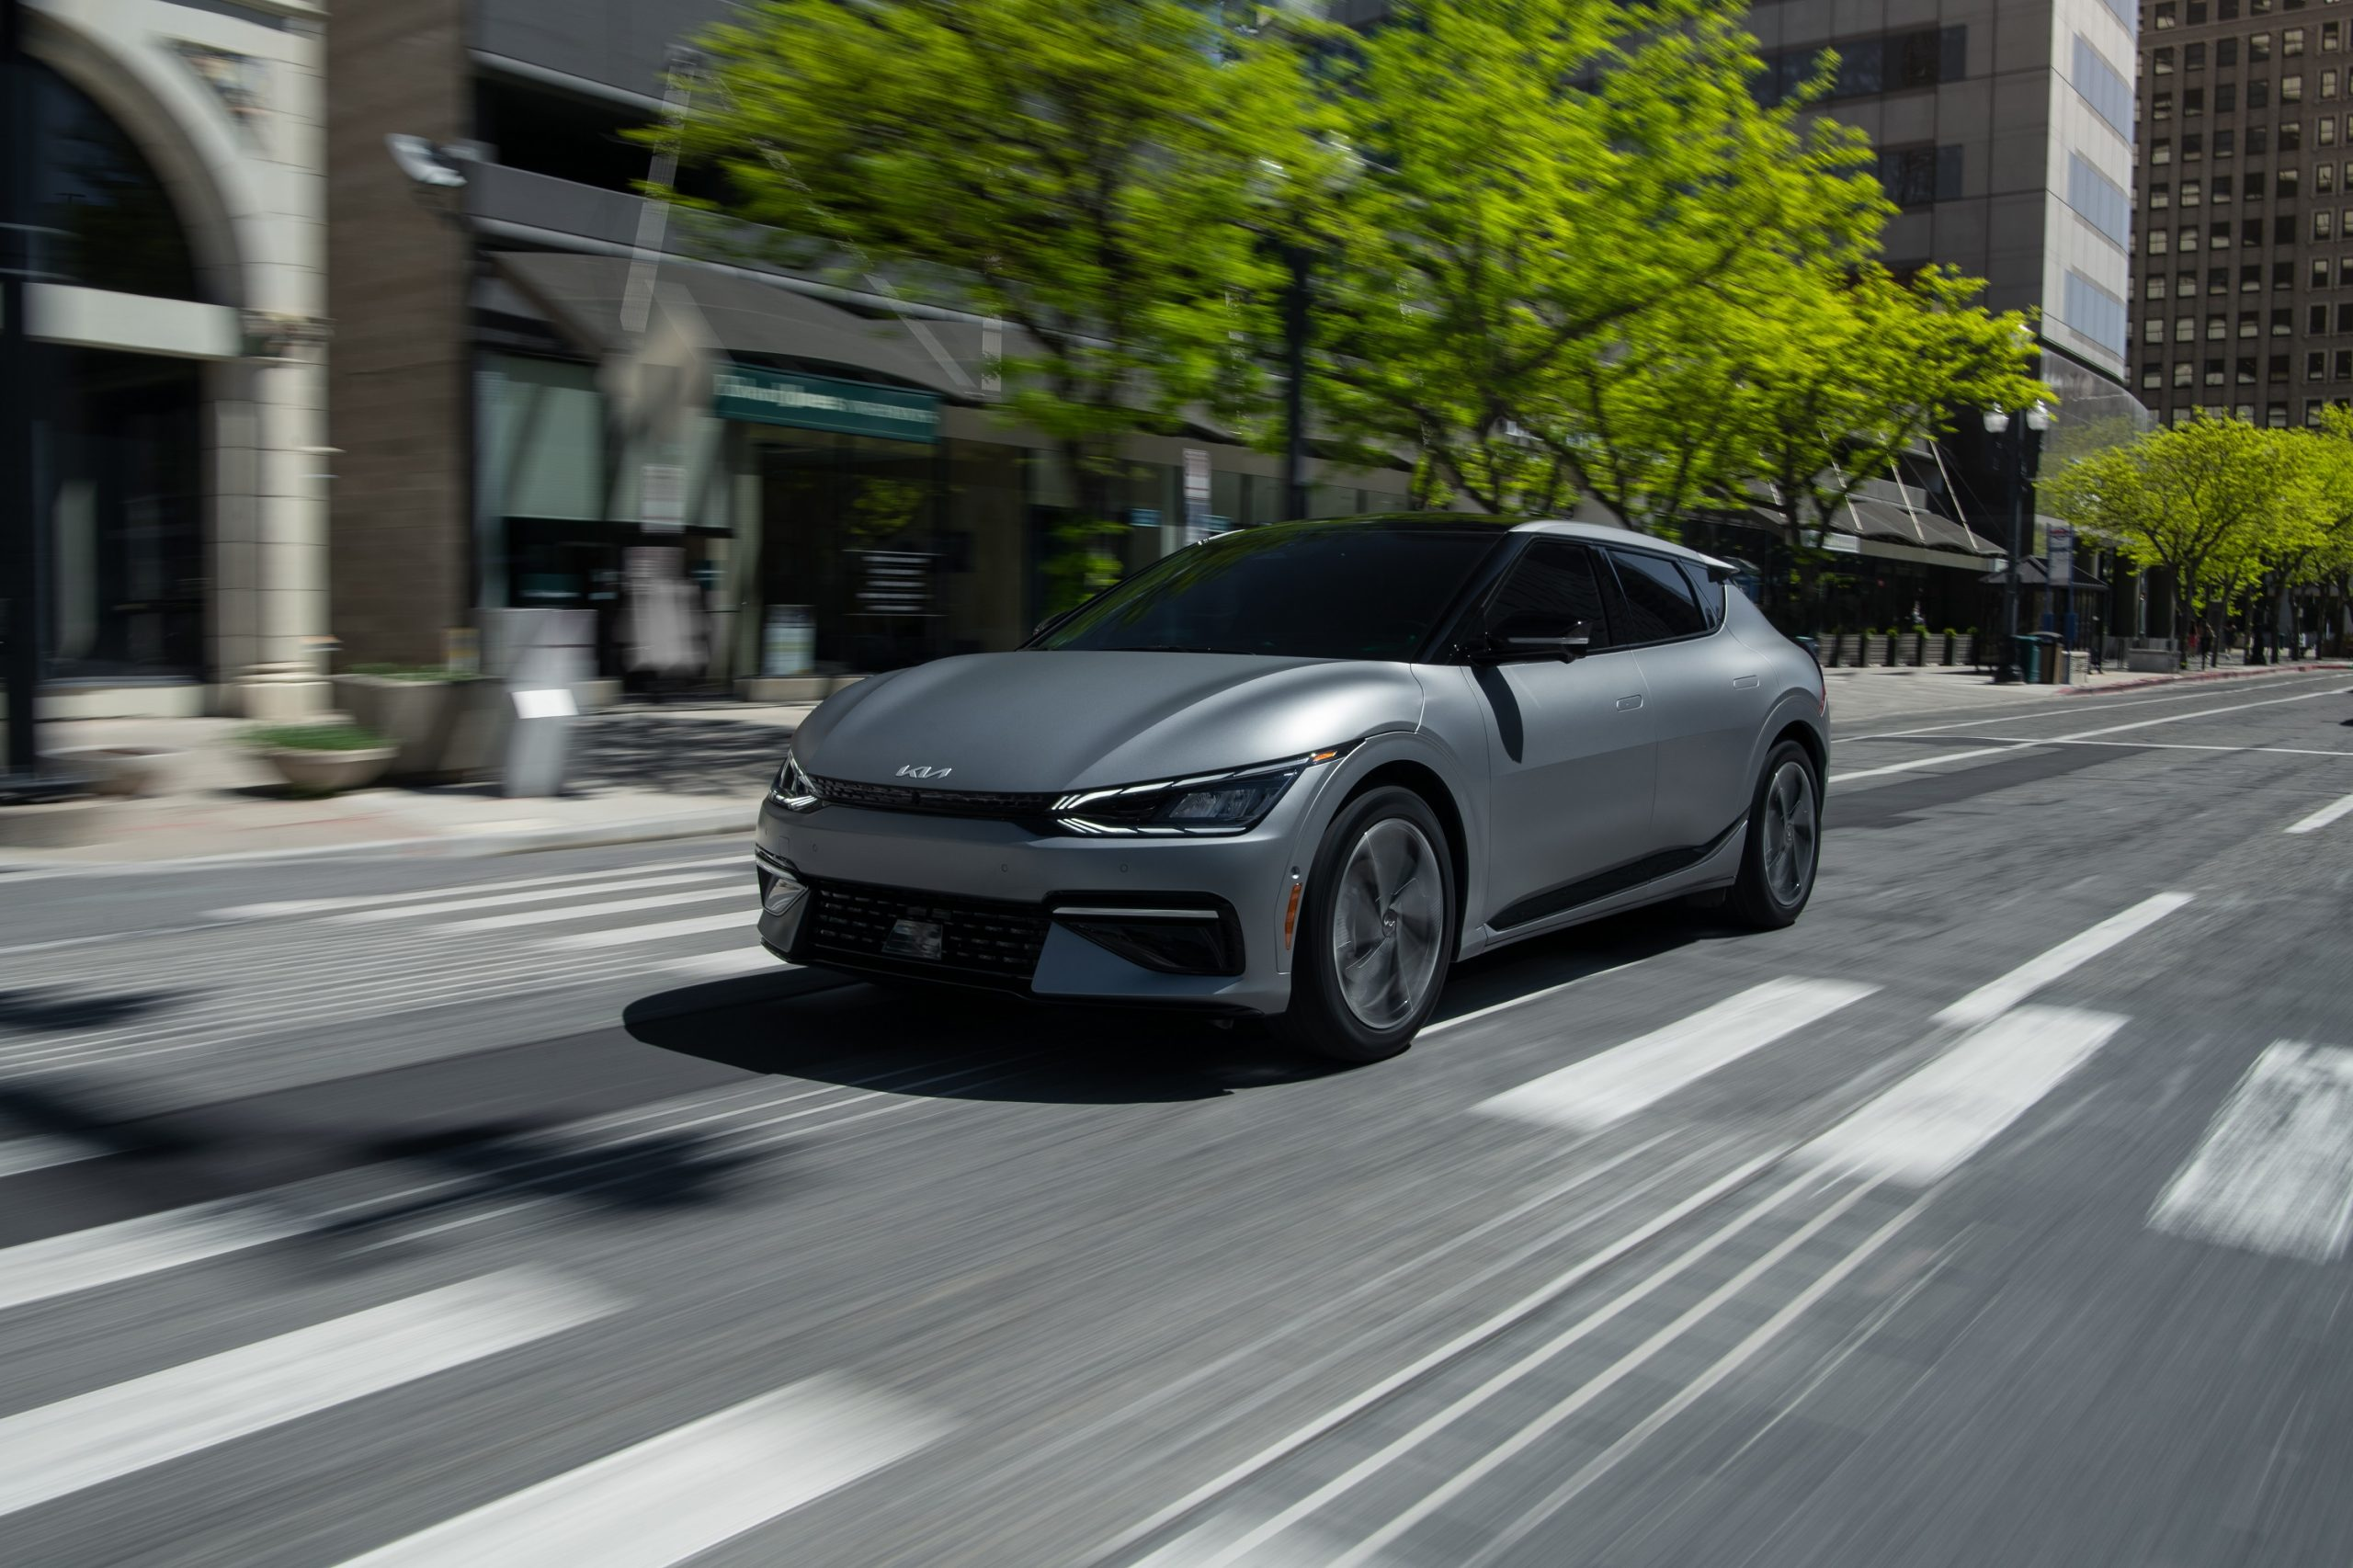 A silver 2022 Kia EV6 rolls down a city street, shot from the 3/4 angle